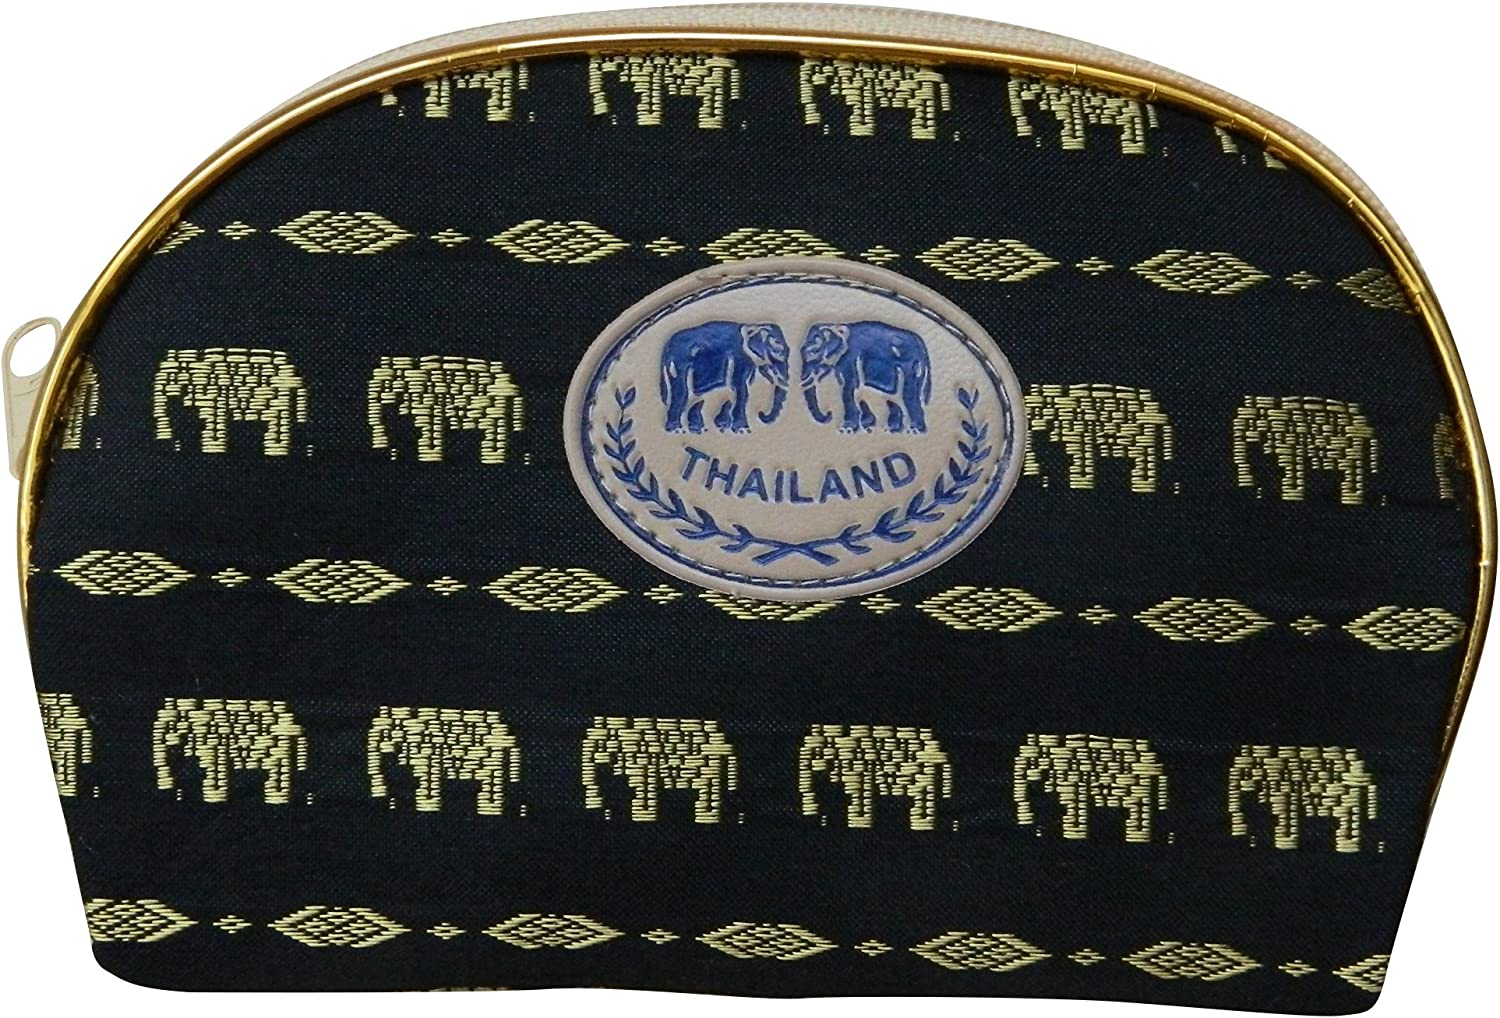 Thai Made Black Elephant Pattern Cosmetics Bag